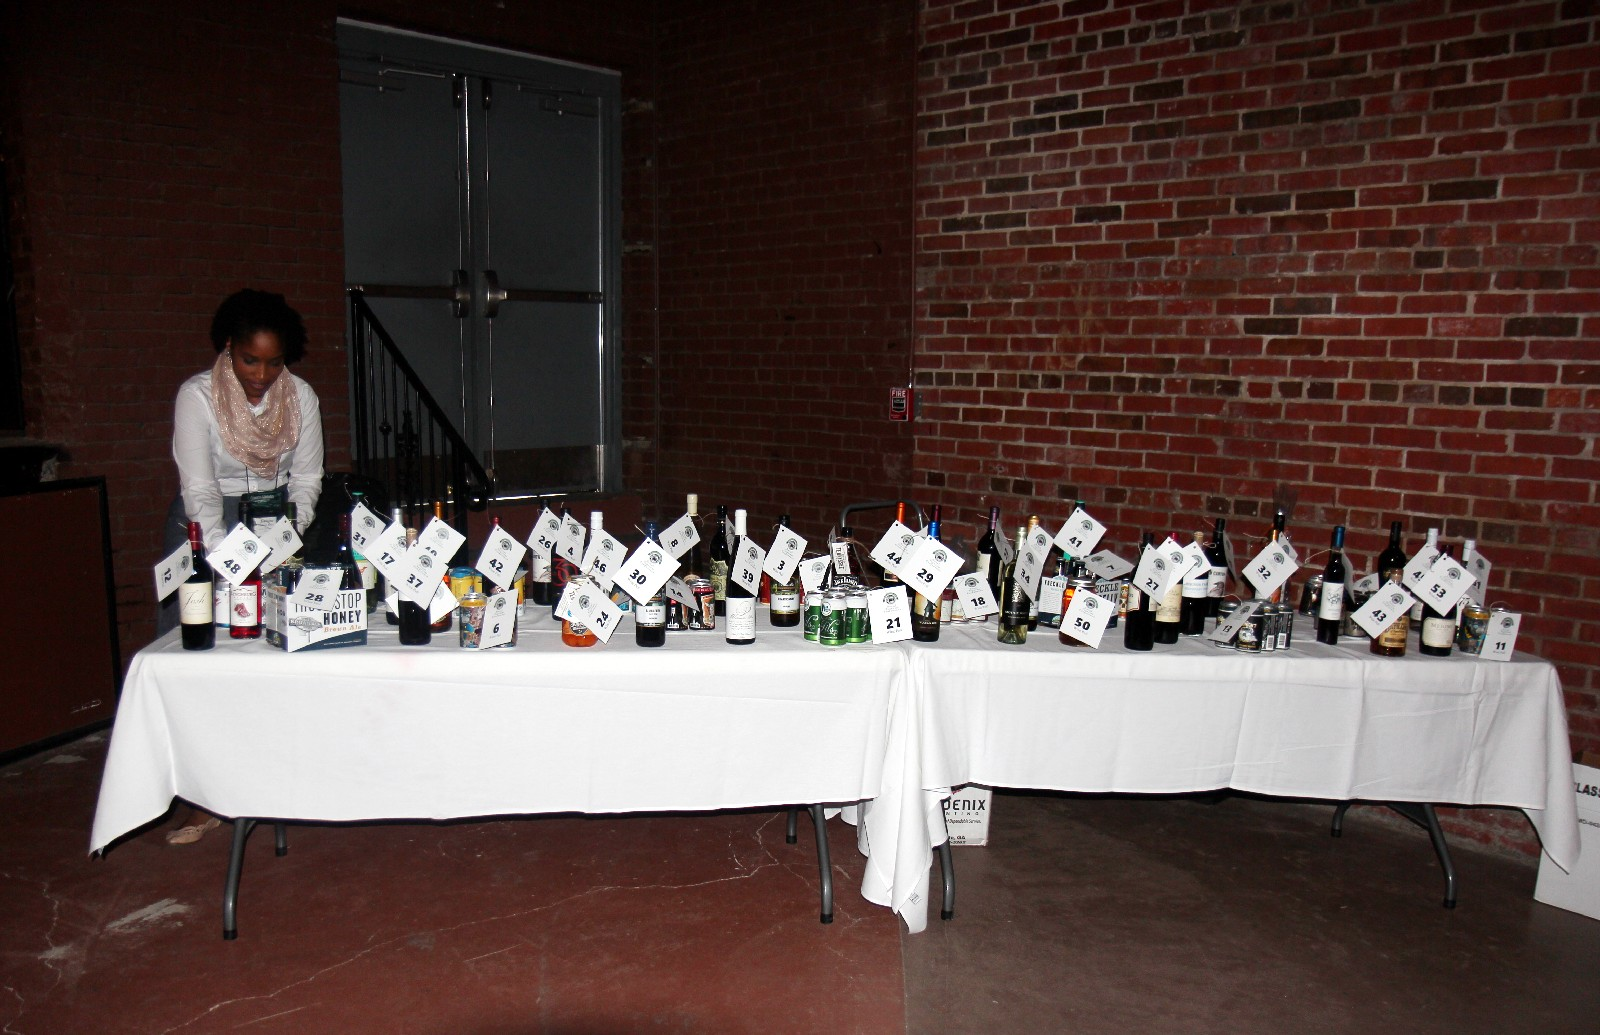 Spirits Pull table displaying wine and other spirits.